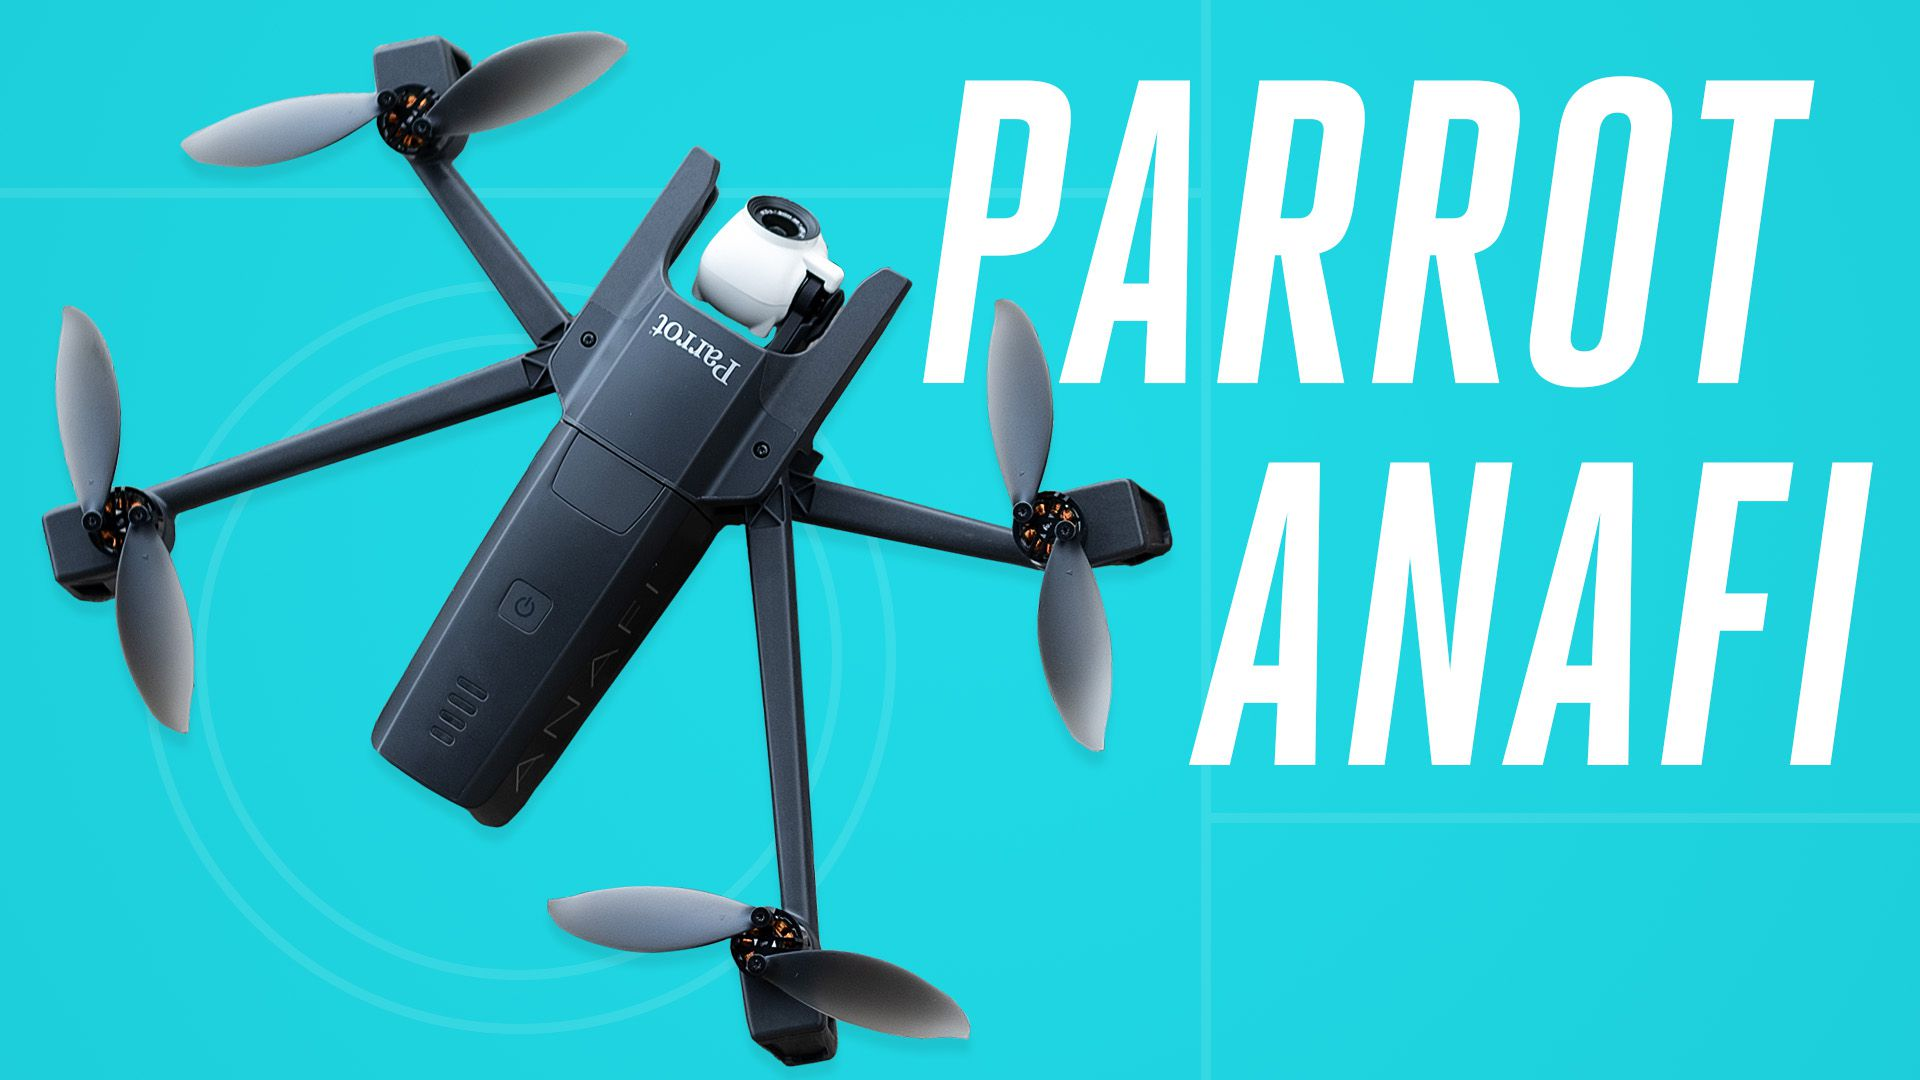 4a15bc64197 Parrot Anafi drone review: flying high, but falling short - The Verge